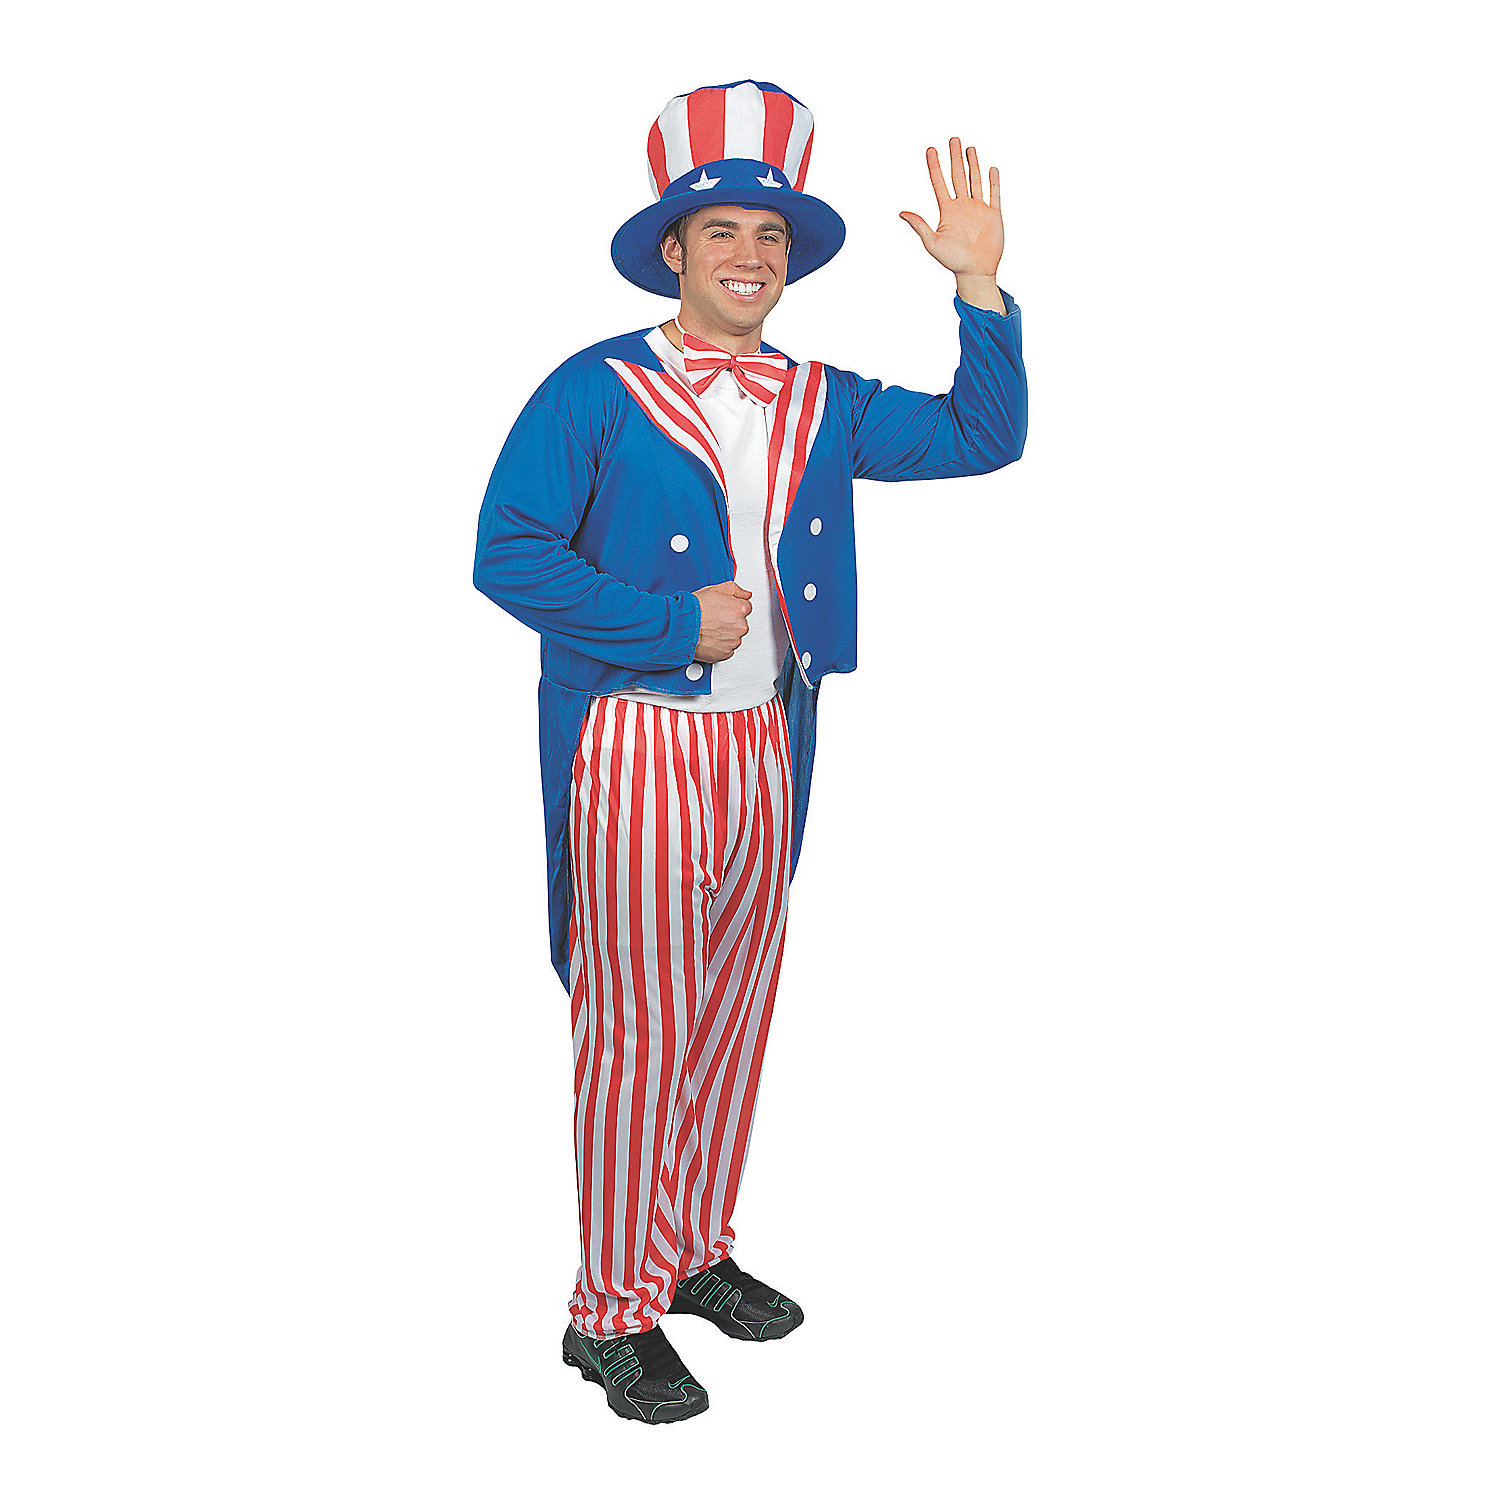 uncle sam women Uncle sam: uncle sam, popular symbol for the united states, usually associated with a cartoon figure having long white hair and chin whiskers and dressed in a swallow-tailed coat, vest, tall hat, and striped trousers.